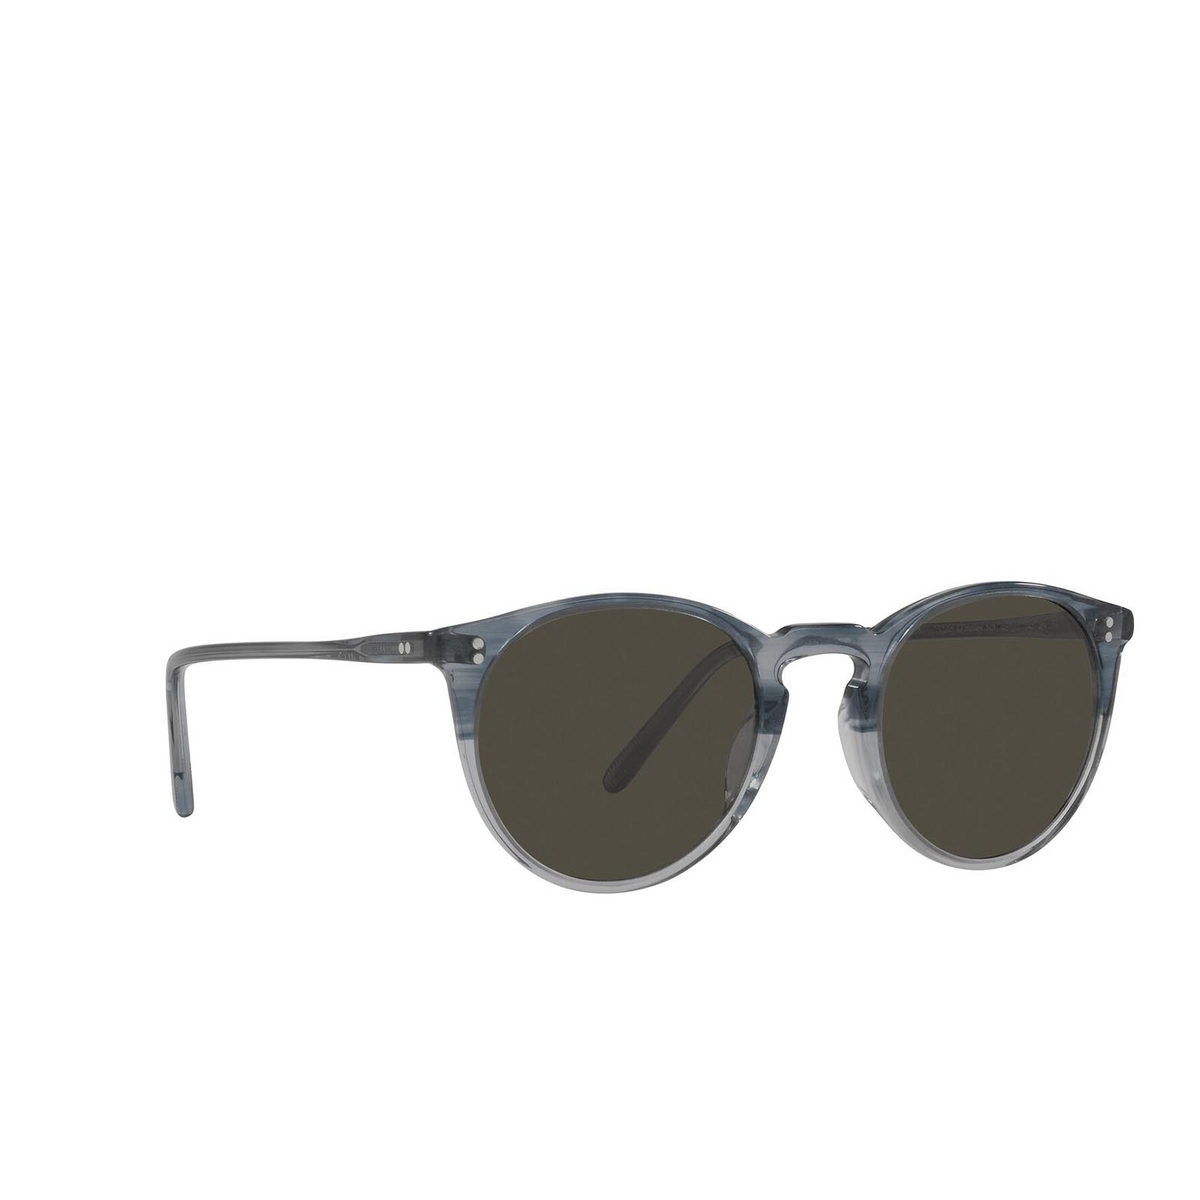 Oliver Peoples® Round Sunglasses: O'malley Sun OV5183S color Dusk Blue Vsb 1702R5 - three-quarters view.